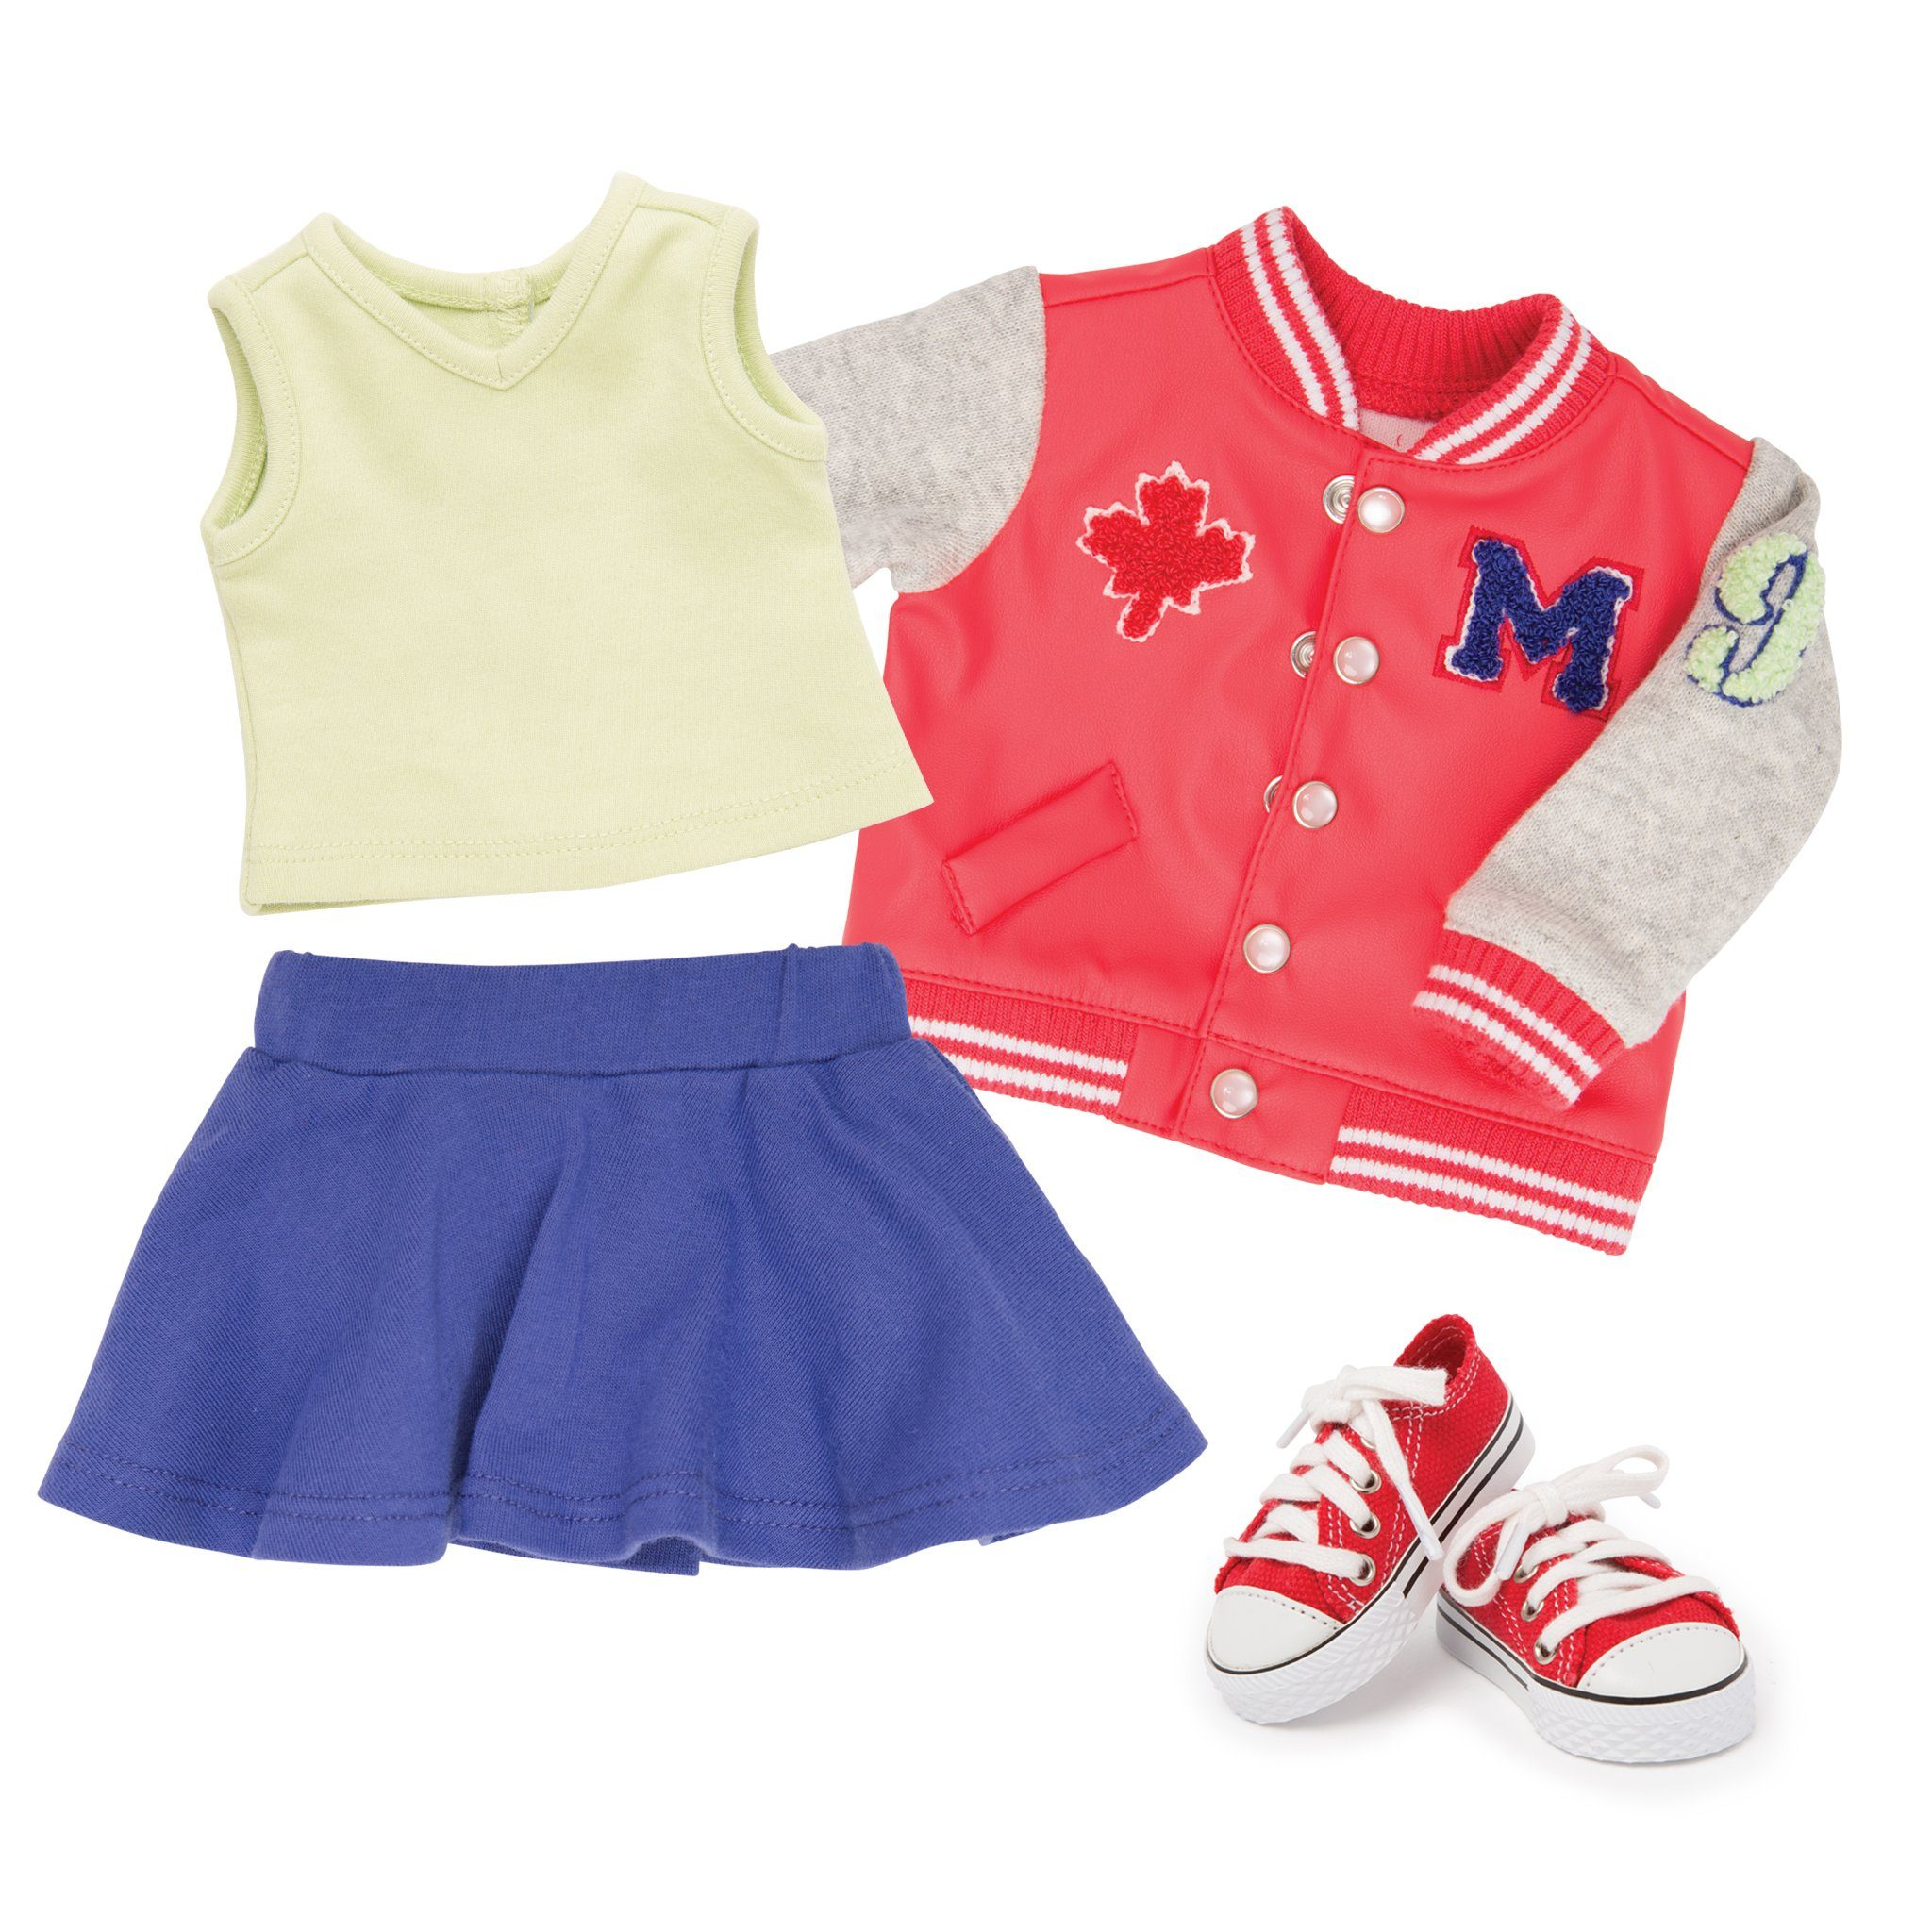 Campus Collection varsity jacket, purple skirt, light green sleeveless tee and red sneakers fits all 18 inch dolls.